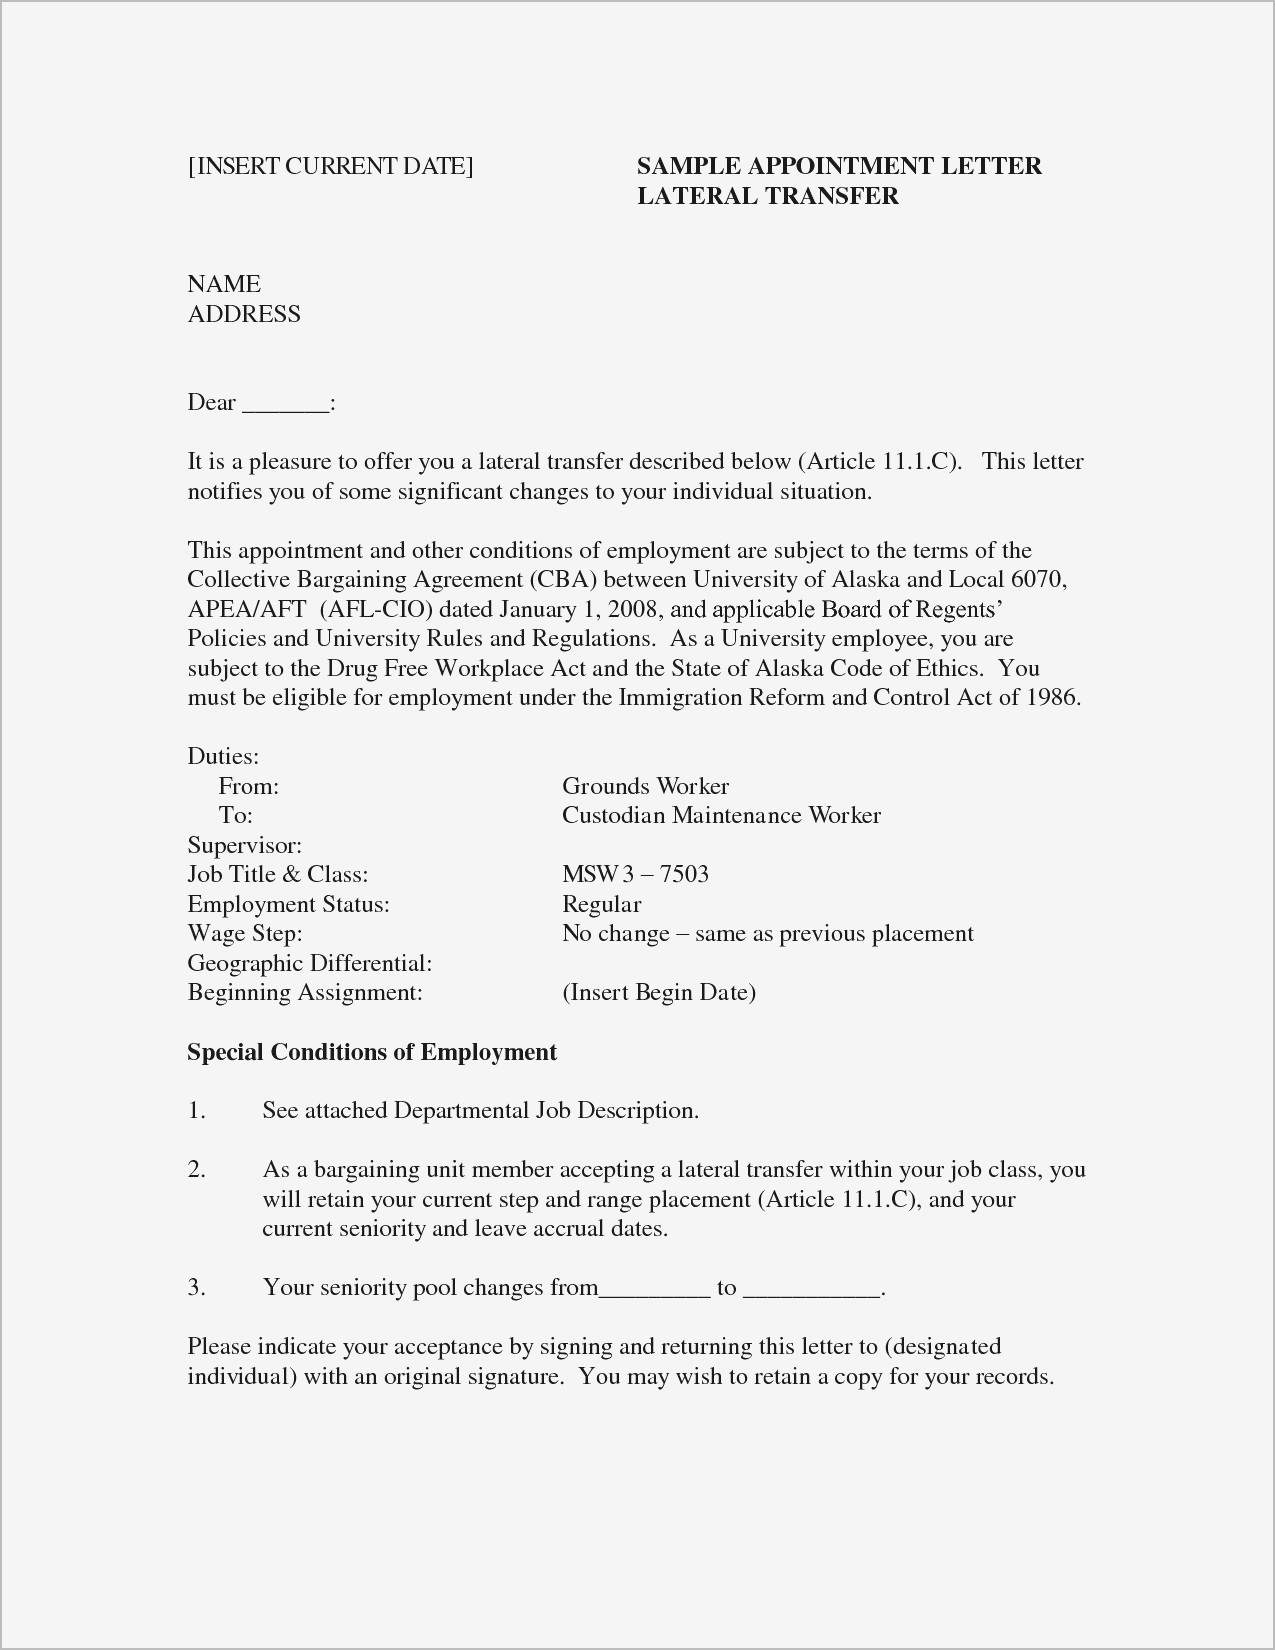 Letter Of Intent Template Microsoft Word - Letter Intent for Job Template New Letter Intent Template Word